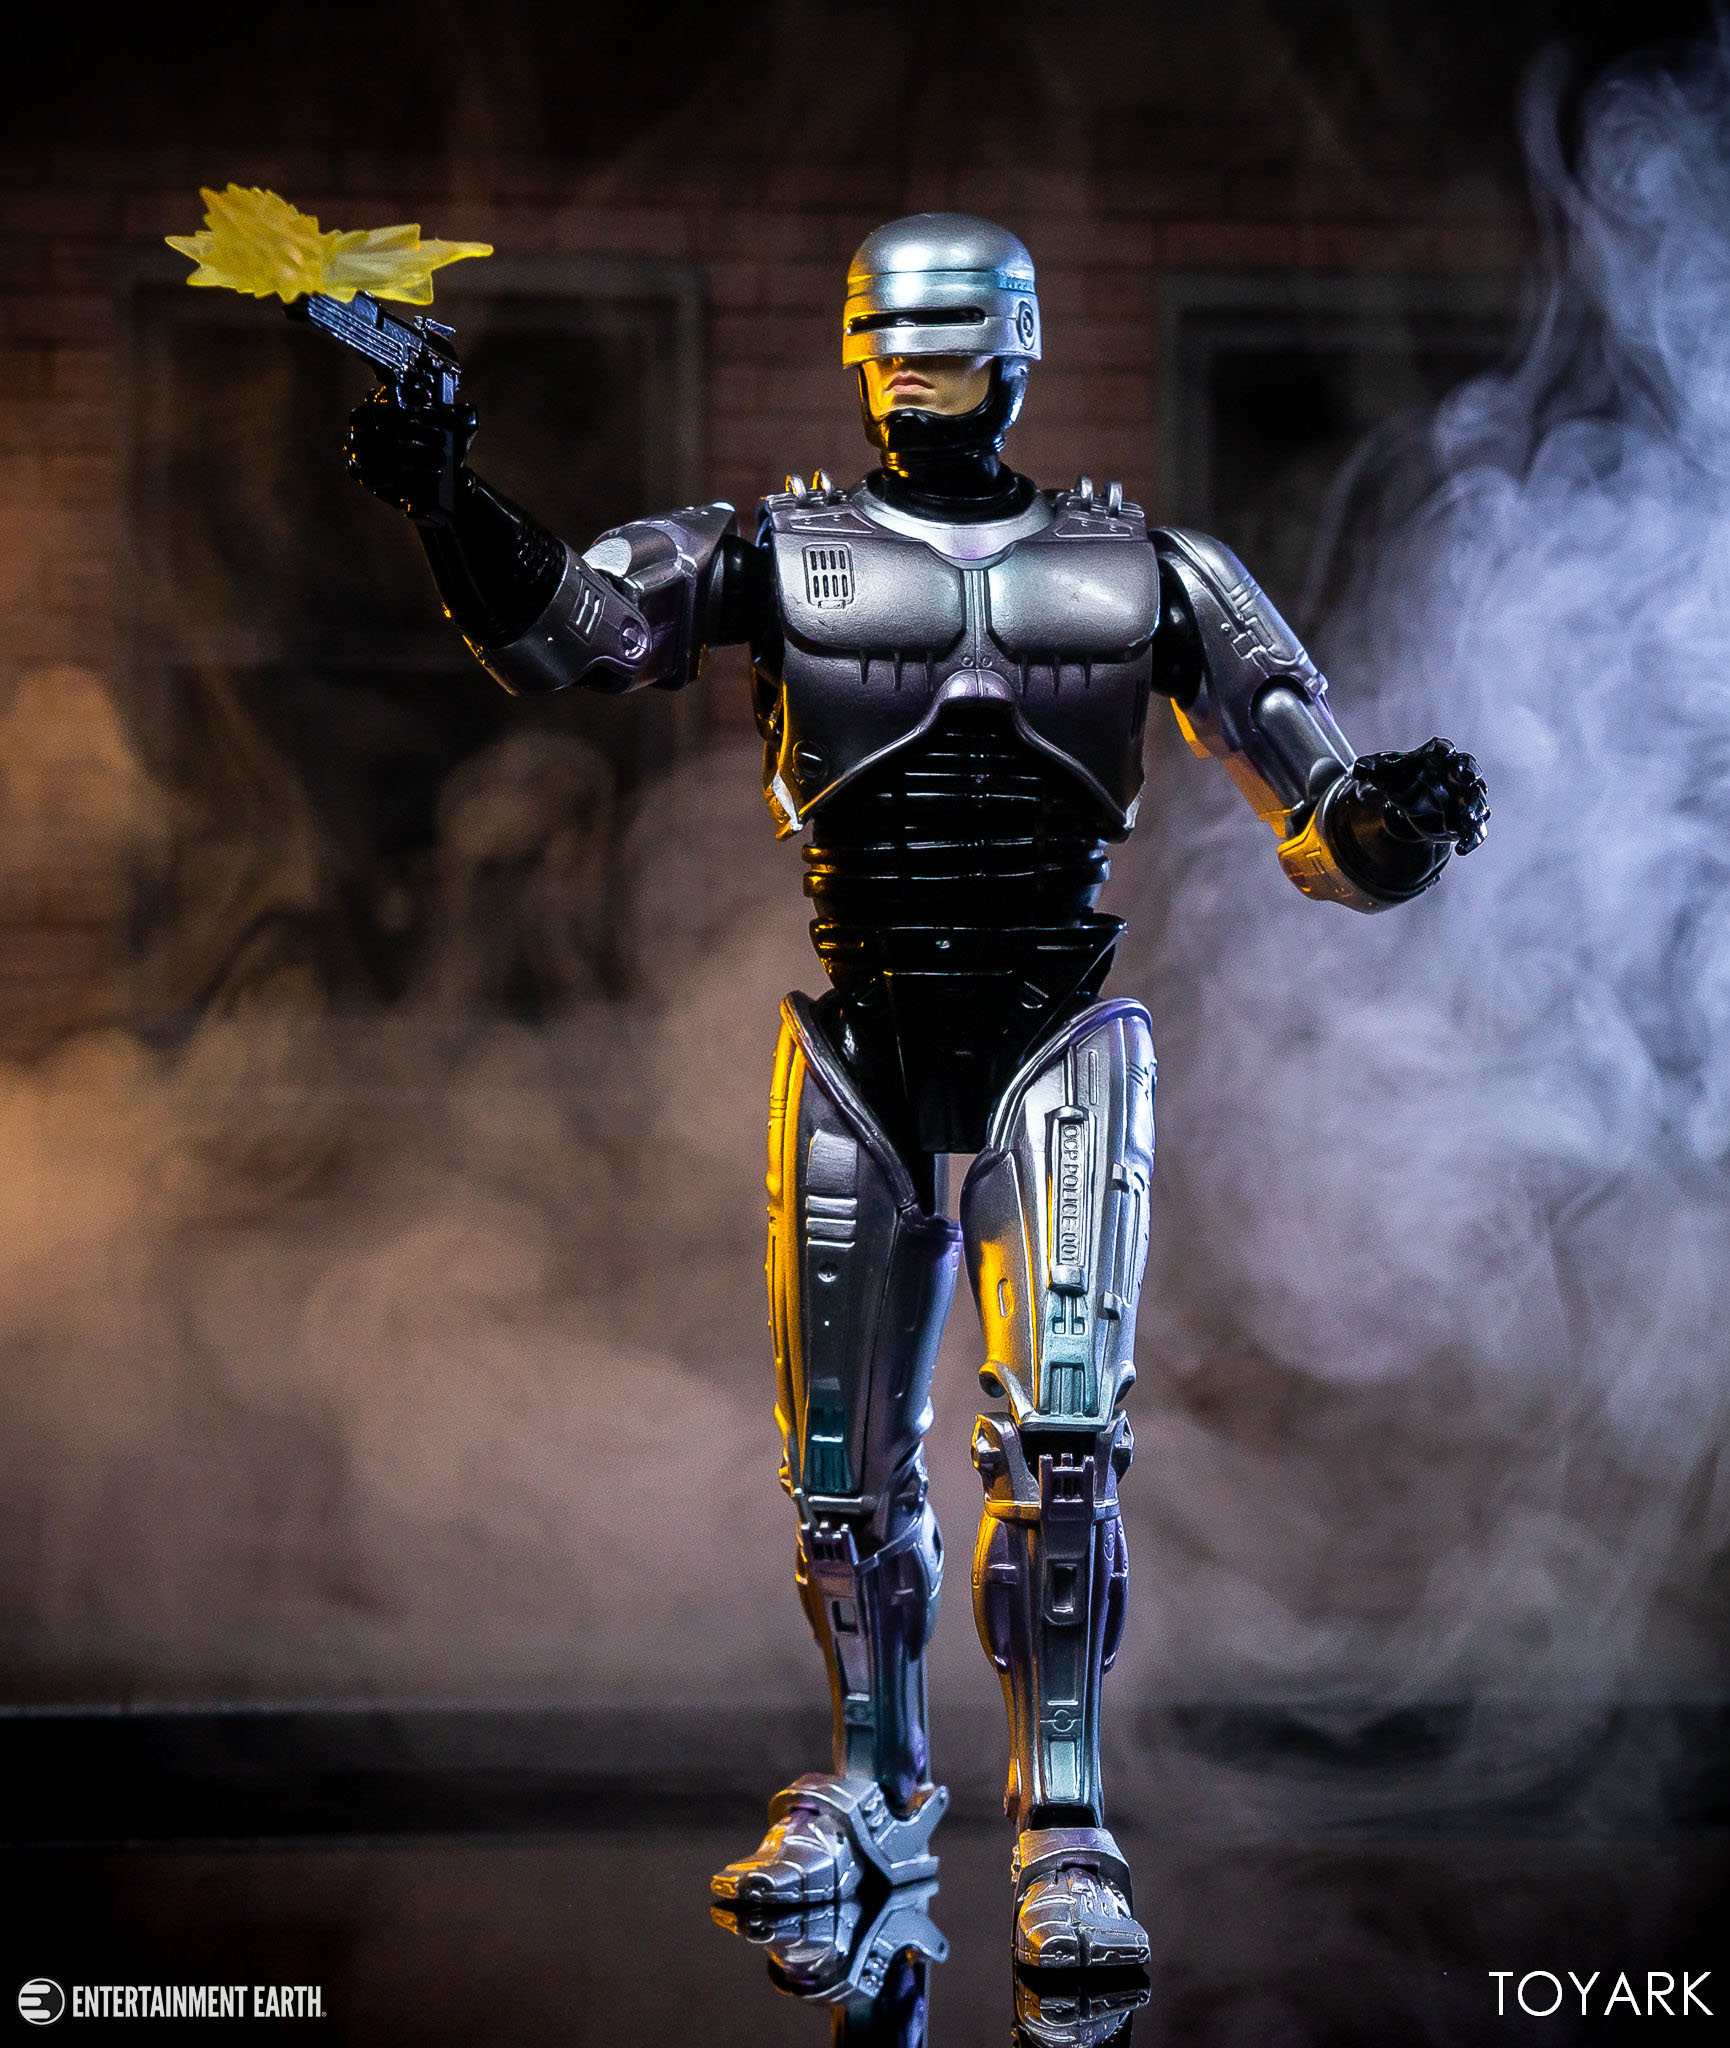 https://news.toyark.com/wp-content/uploads/sites/4/2019/03/MAFEX-Robocop-Gallery-031.jpg